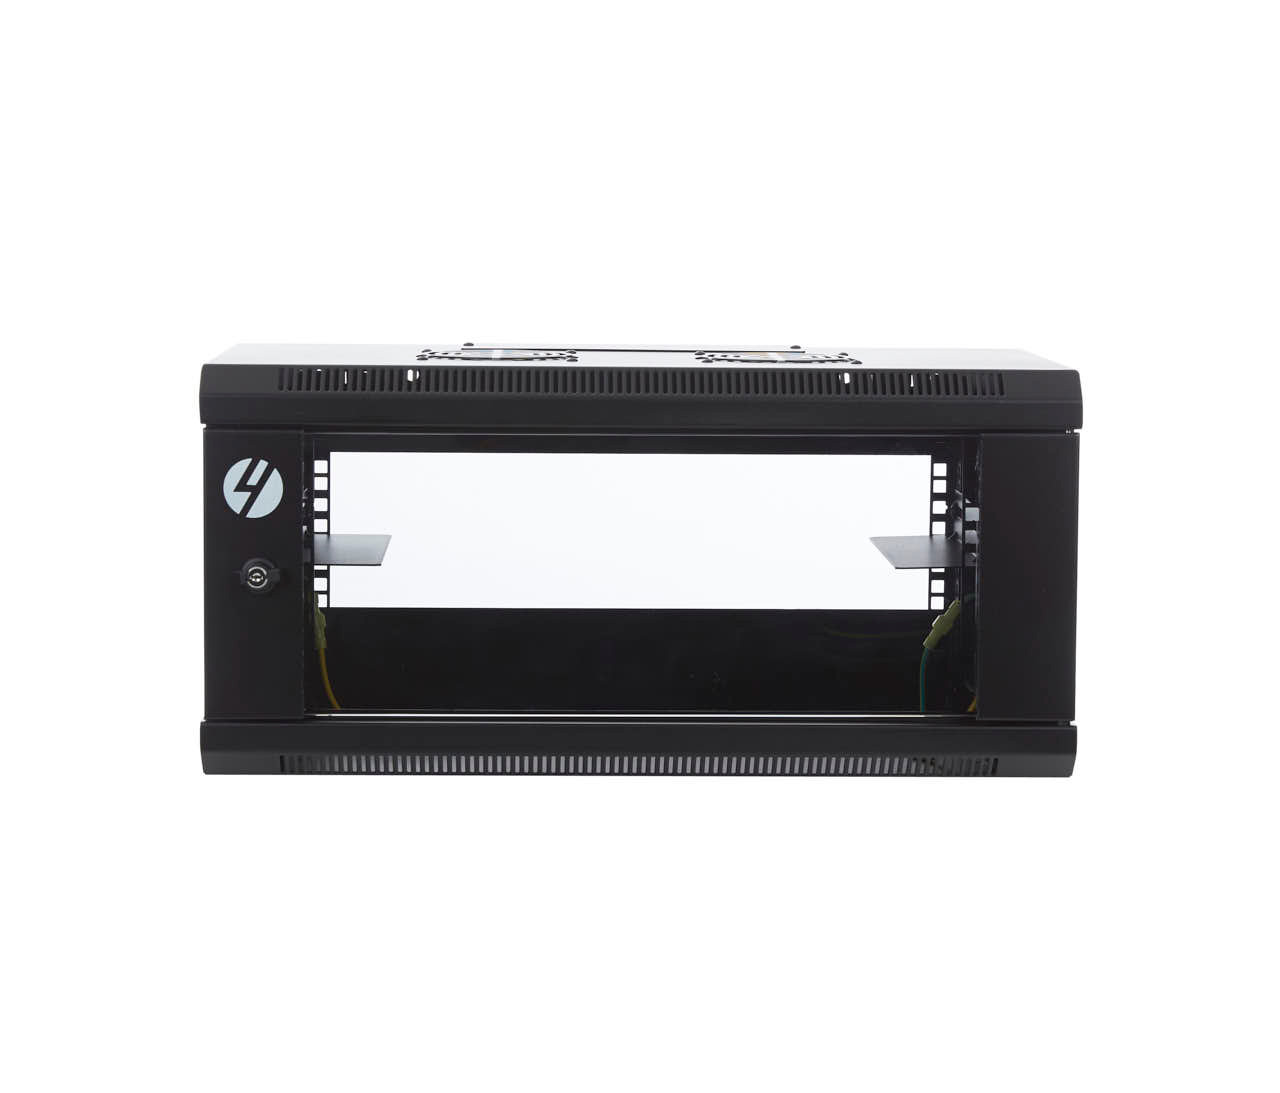 Image for 4Cabling 4RU W600mm x D300mm Wall Mount Server Rack CX Computer Superstore